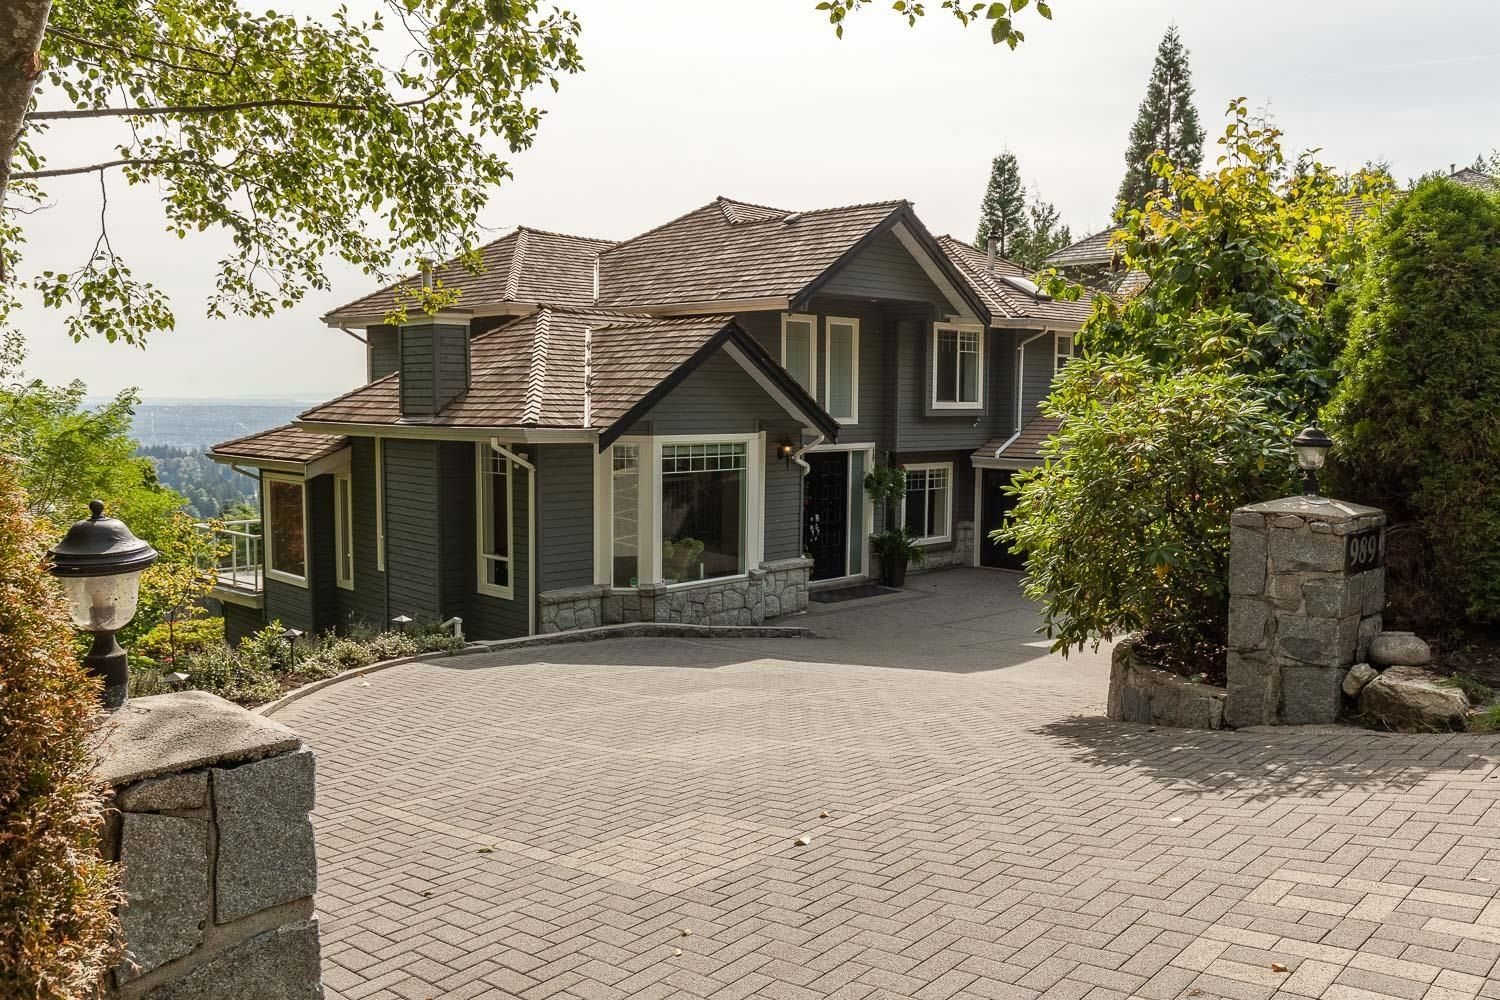 Main Photo: 989 DEMPSEY Road in North Vancouver: Braemar House for sale : MLS®# R2621301